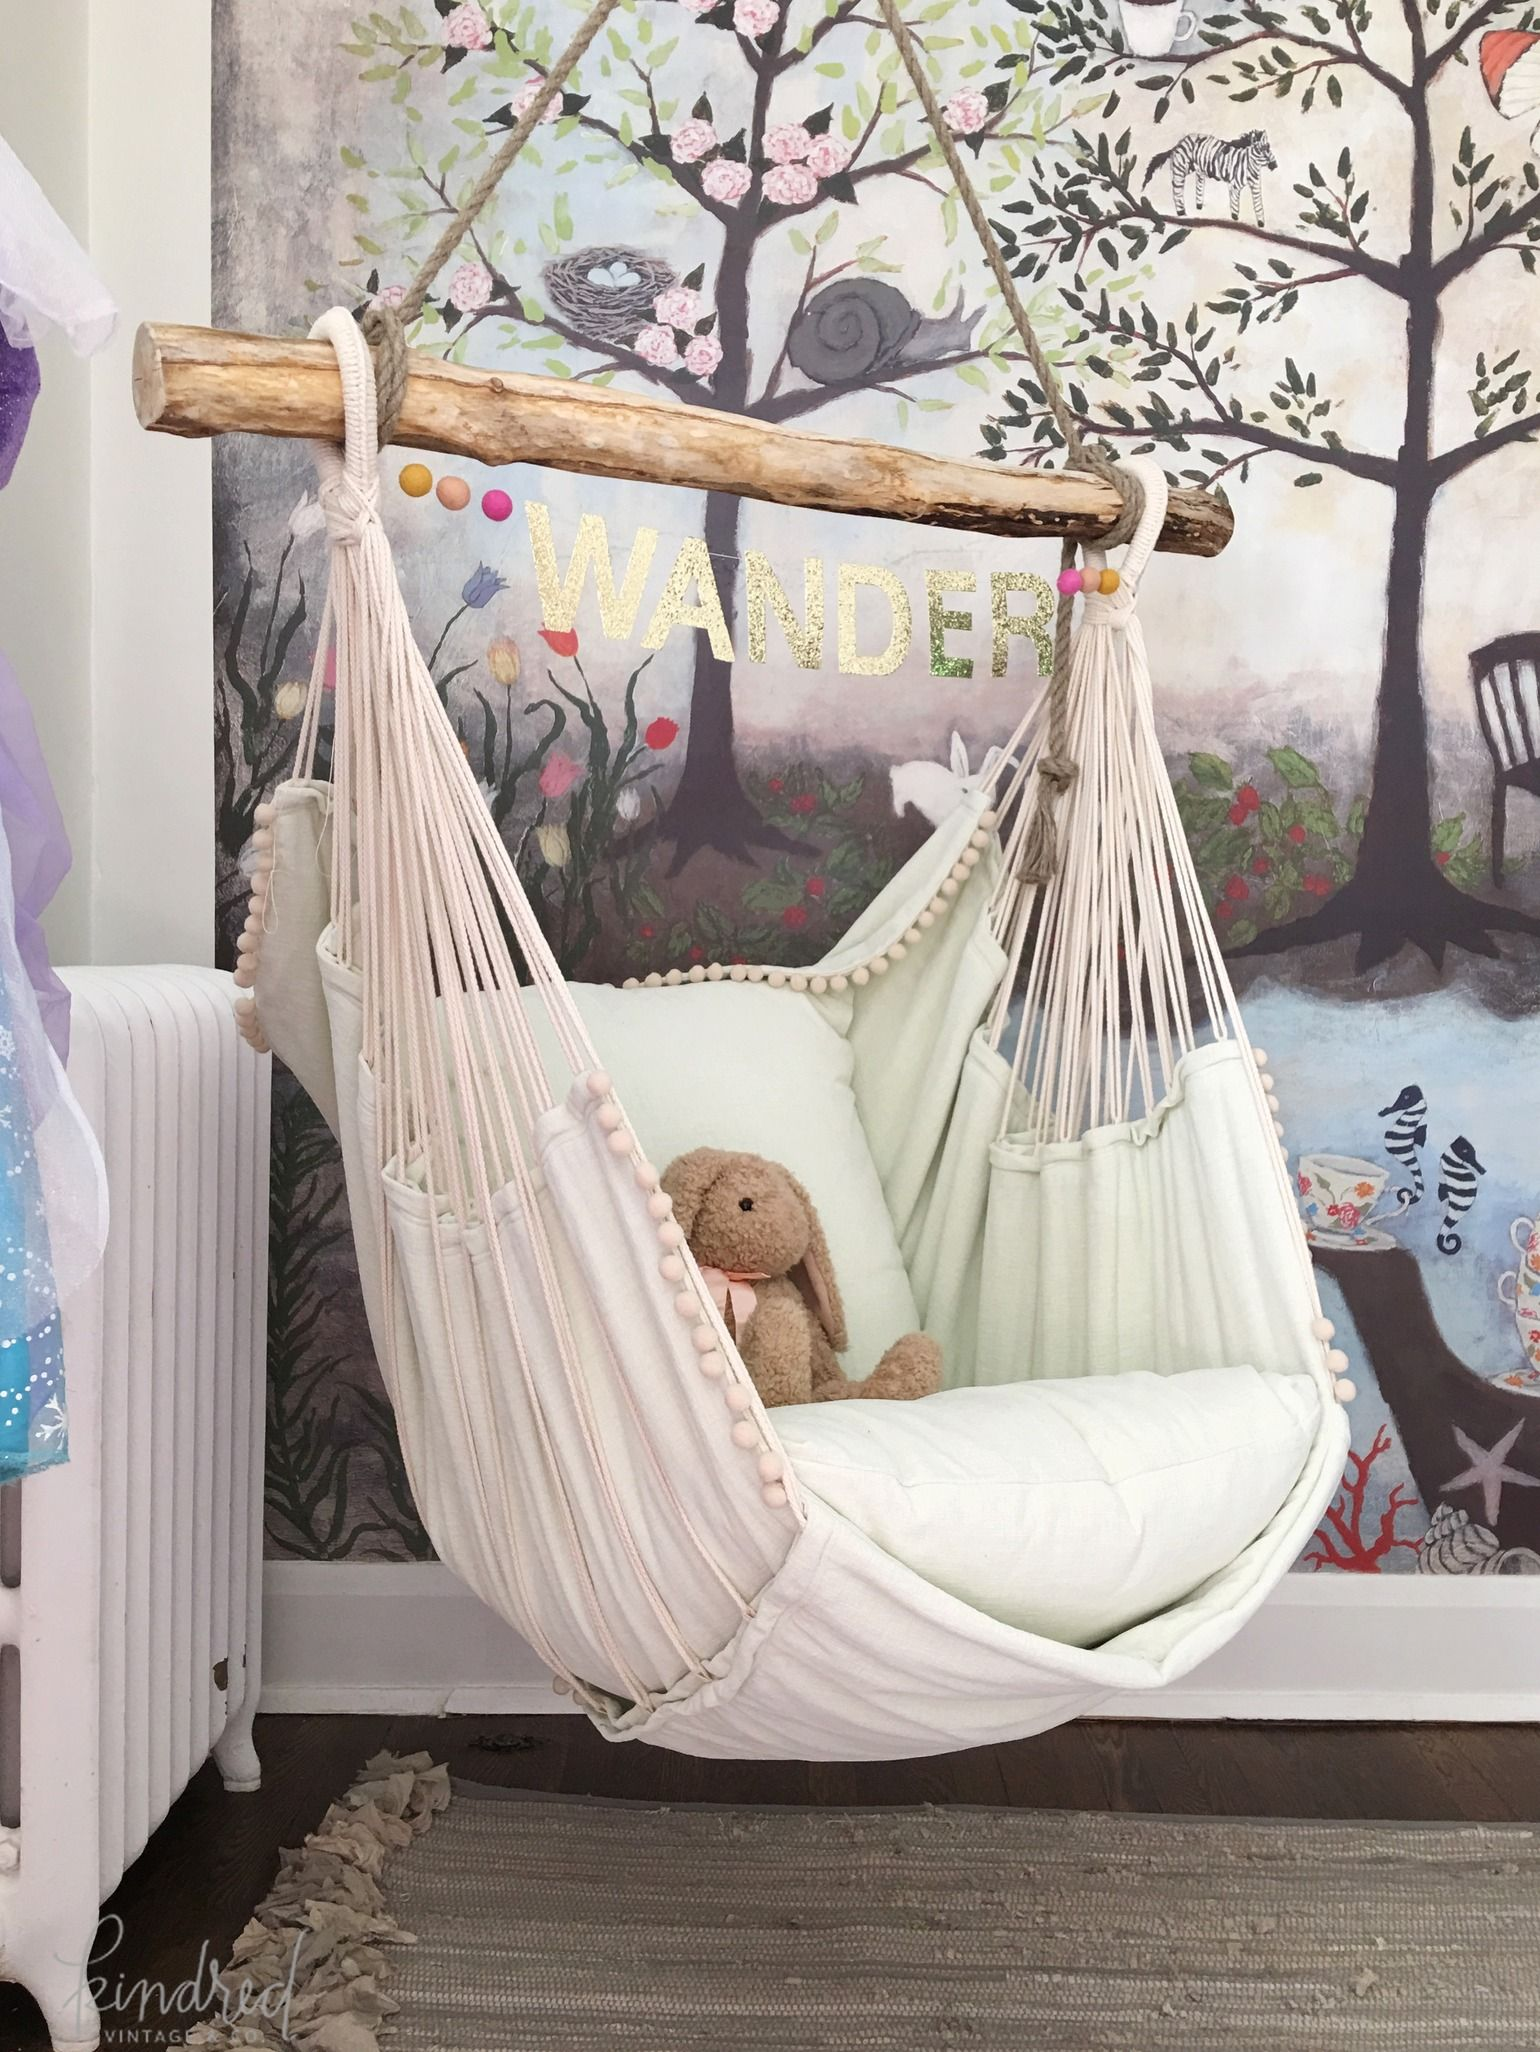 Hammock Hammock Chair Swing Children s Hammock Chair Bohemian Chair Hanging Chair Children s Swing